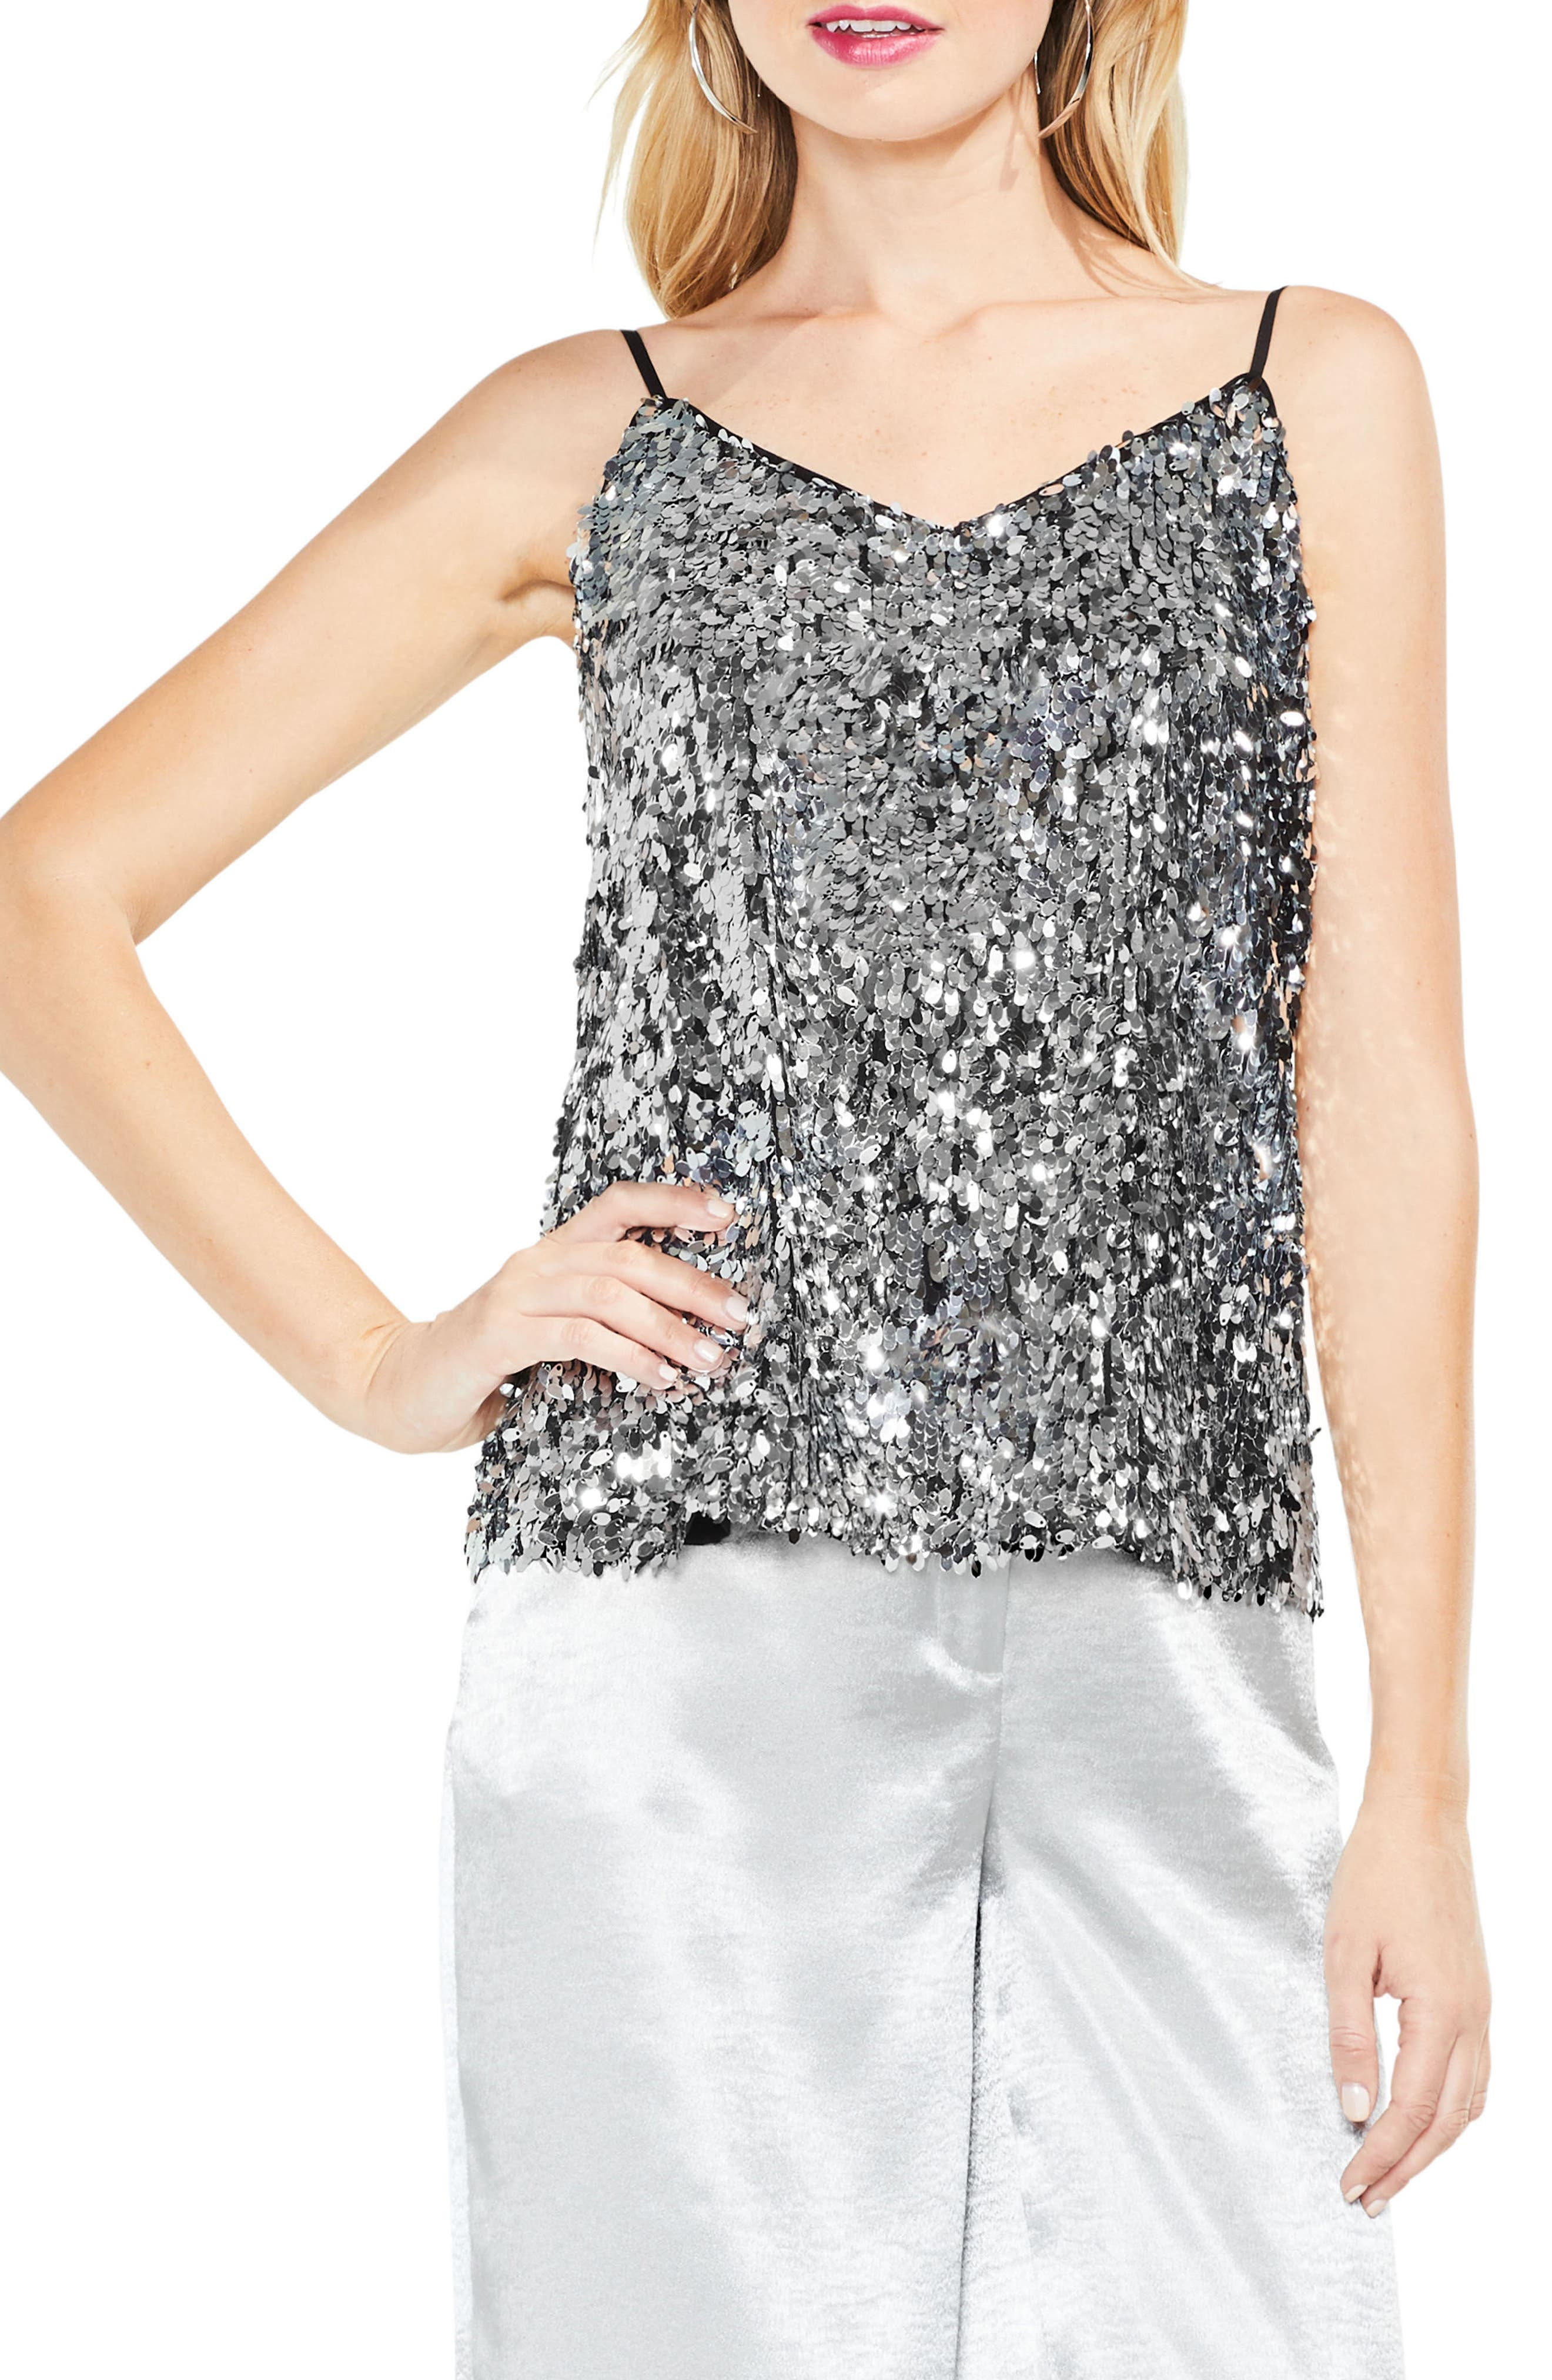 Main Image - Vince Camuto Allover Sequin Camisole Top